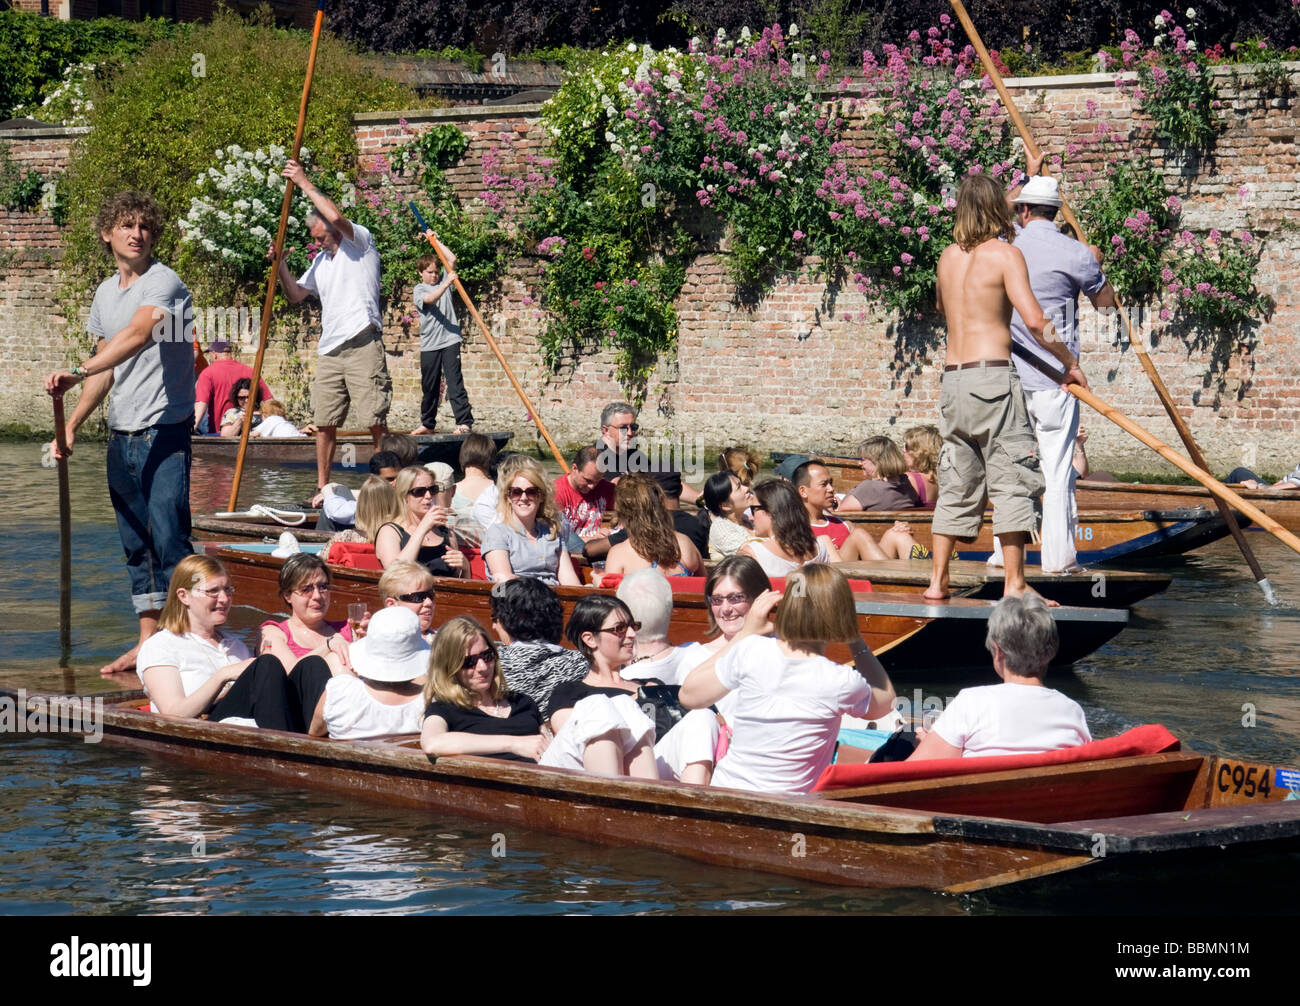 Punting on the River Cam, Cambridge, UK on a sunny summers day - Stock Image